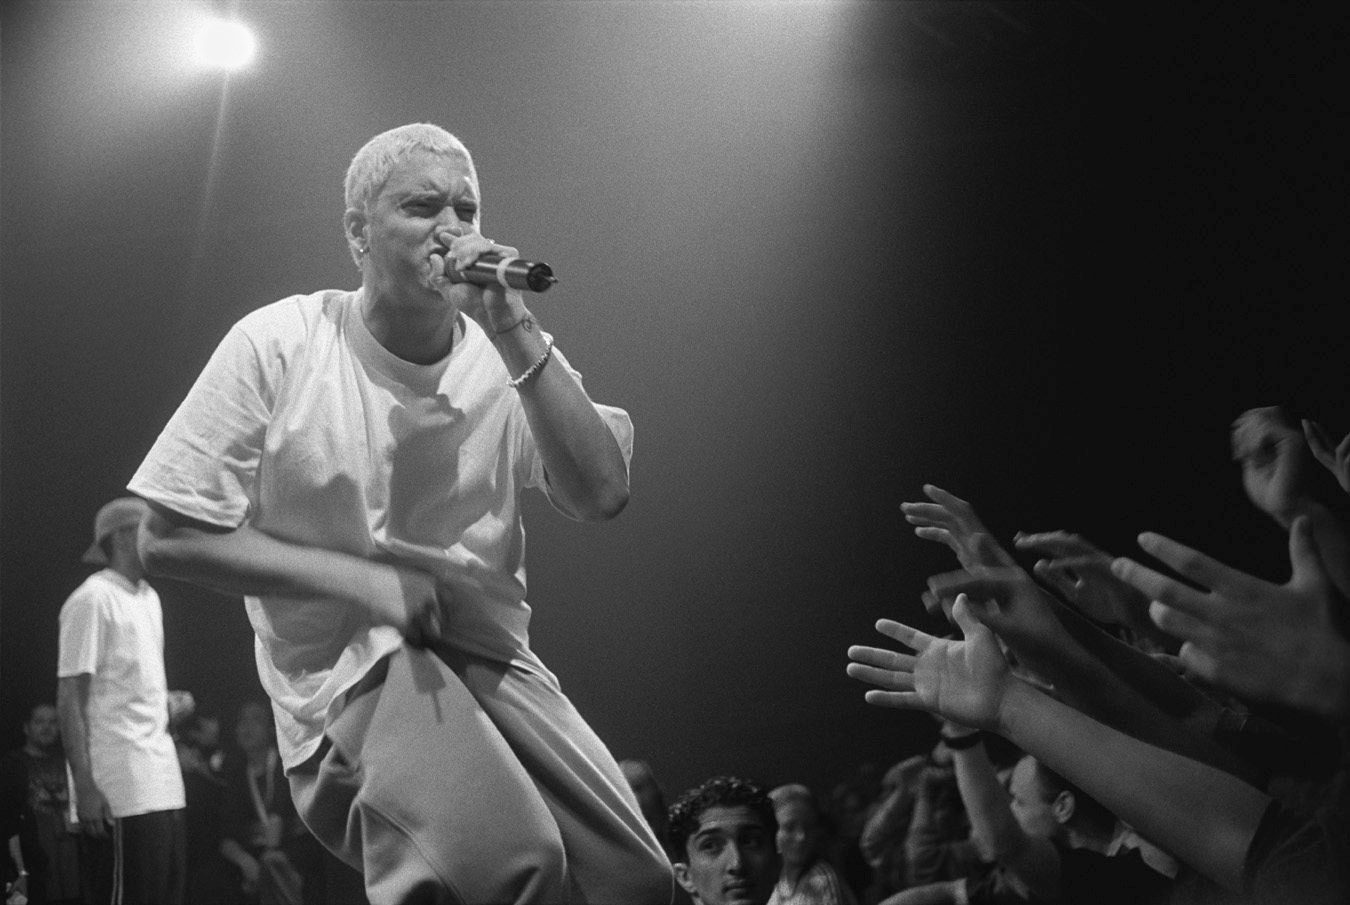 Will the real Slim Shady please sit down? Eminem's failed